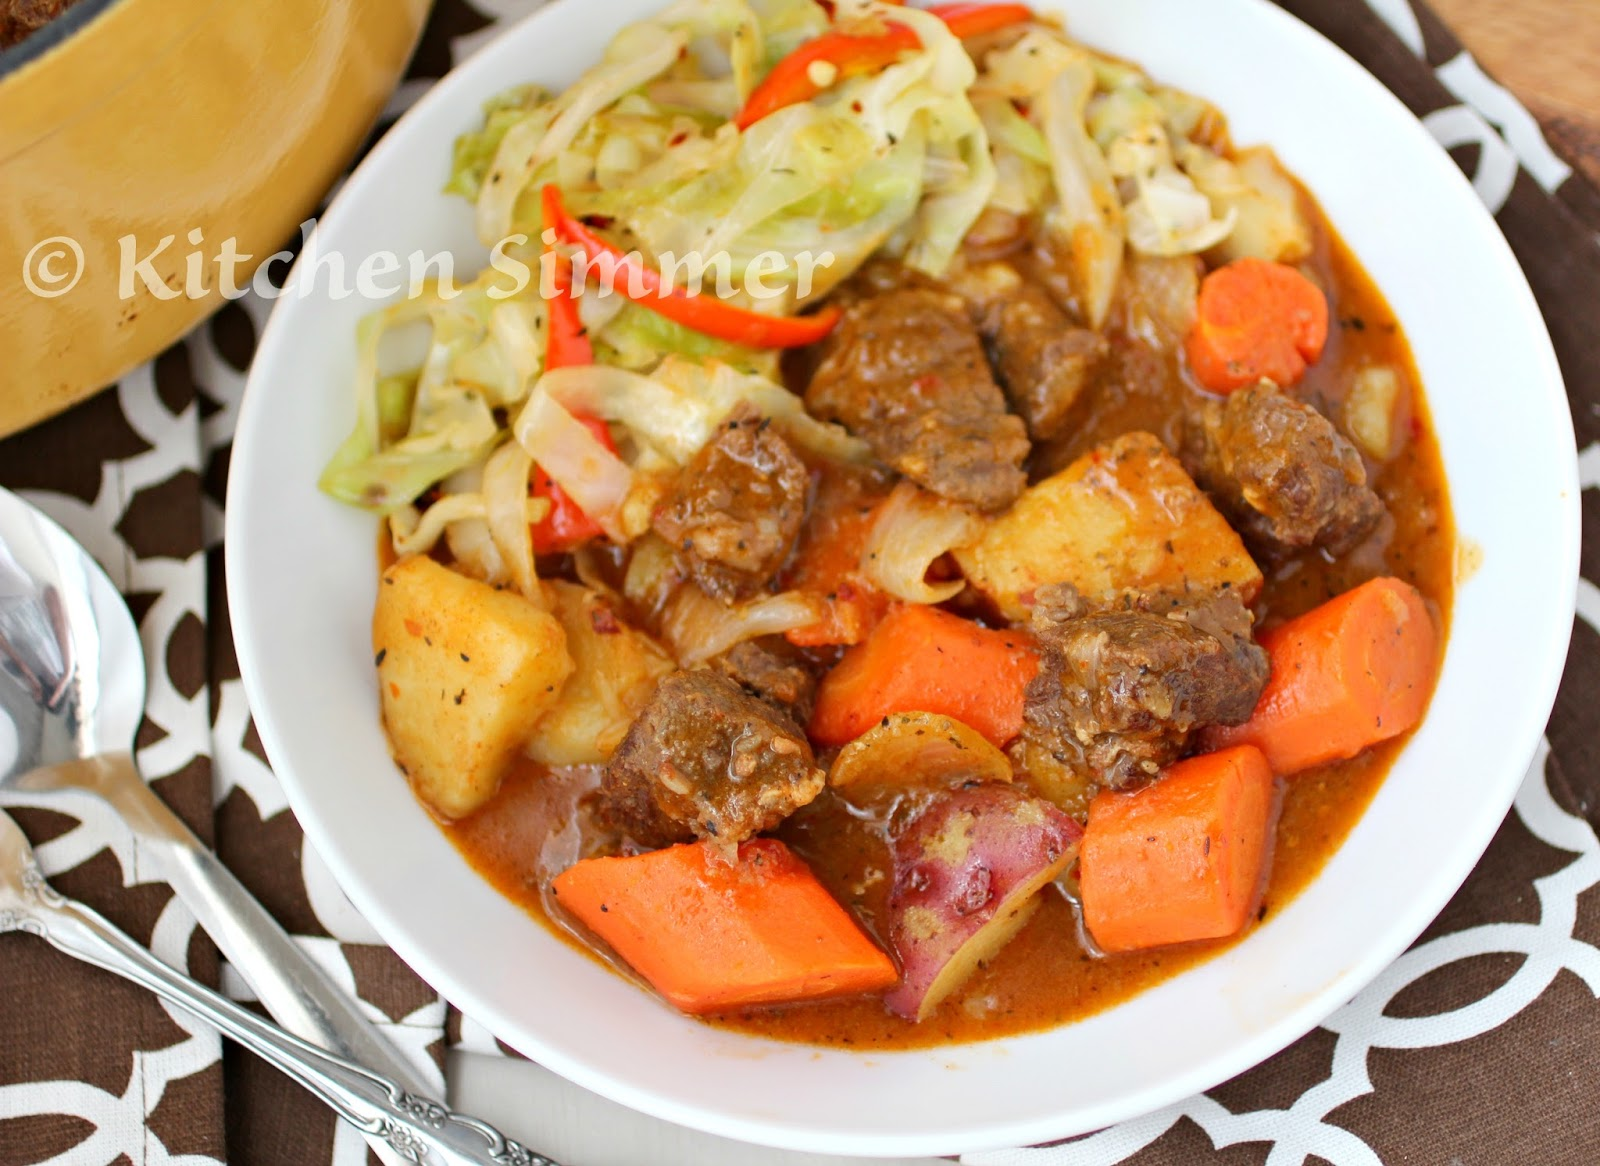 Kitchen Simmer: Beef and Bacon Stew with Sauteed Cabbage